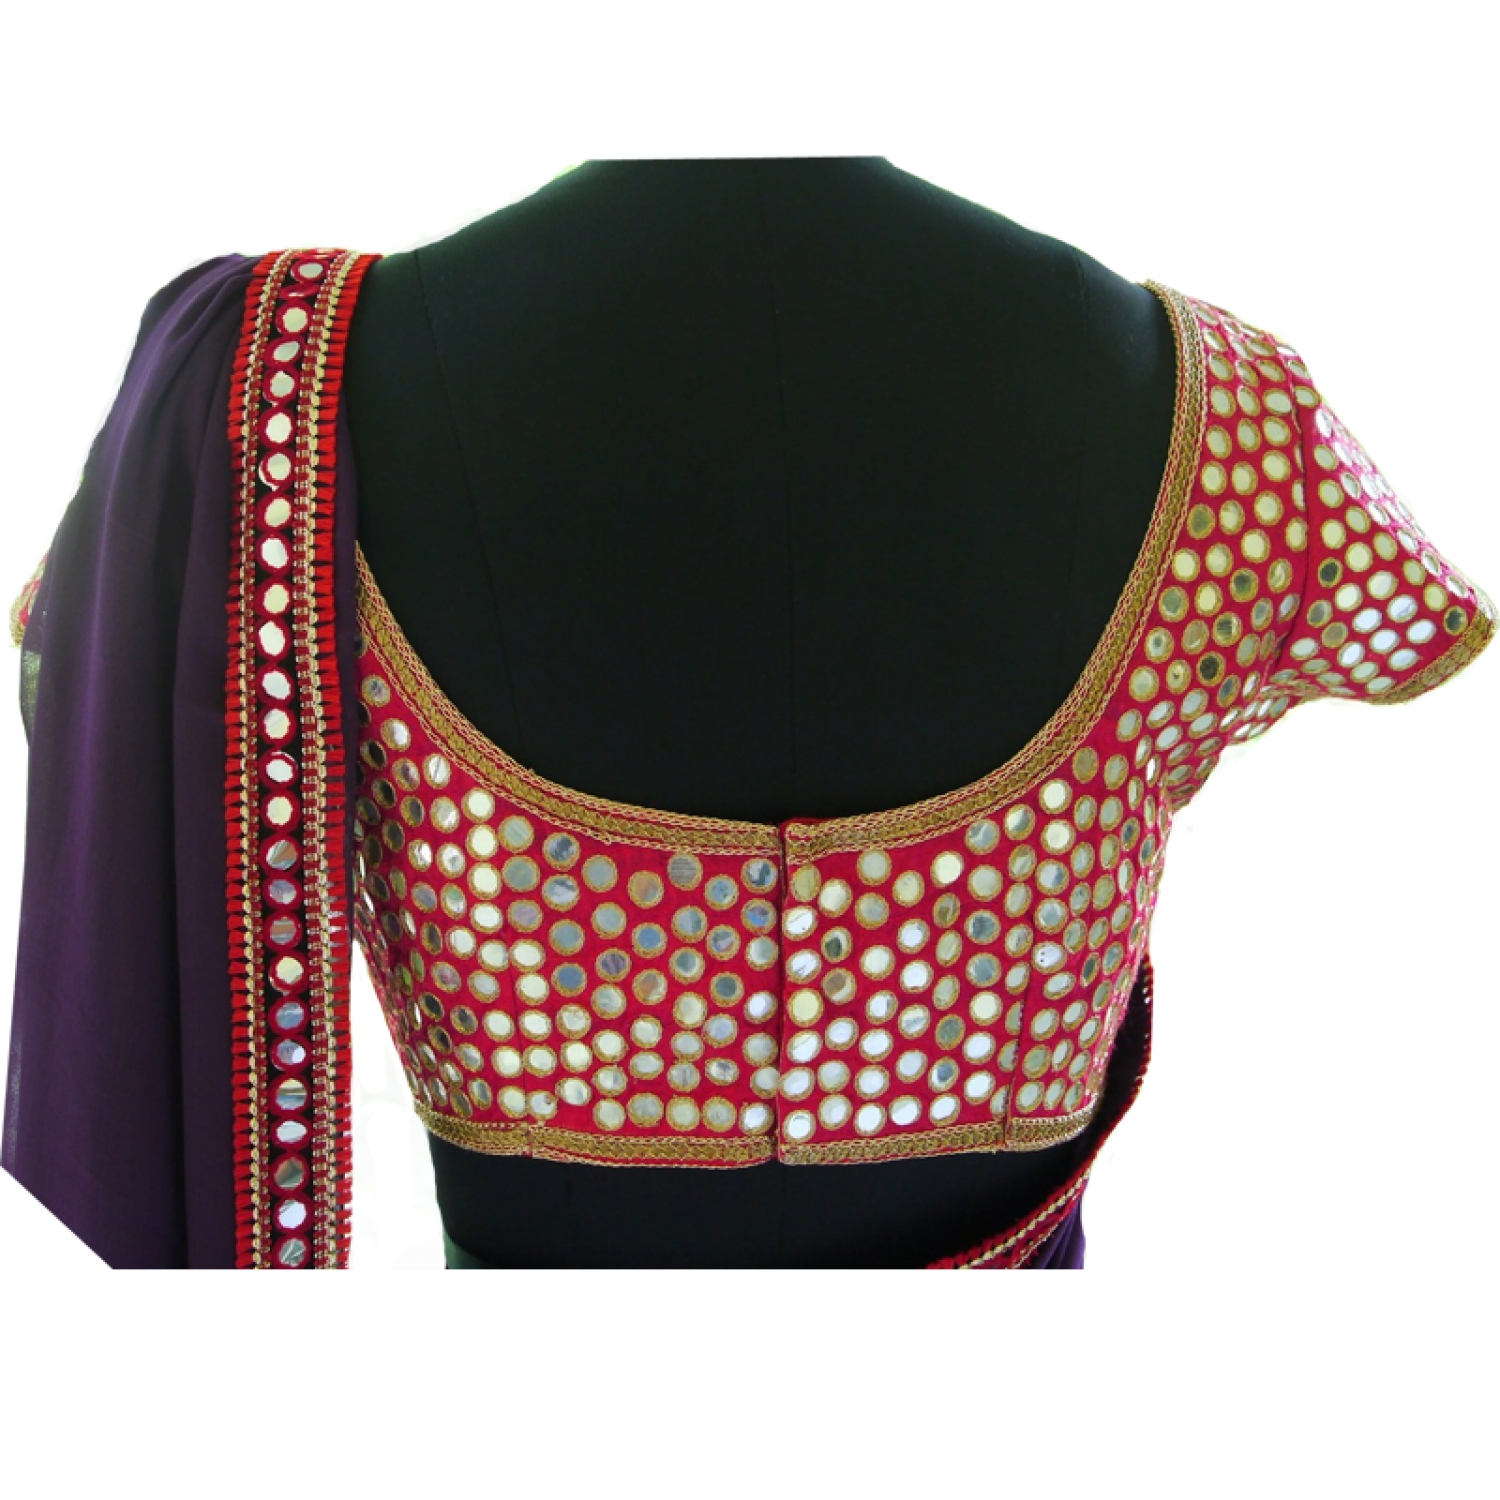 Latest Bridal Readymade Blouses Online Shopping India With Low Throughout Online Shopping Mirror (View 12 of 20)